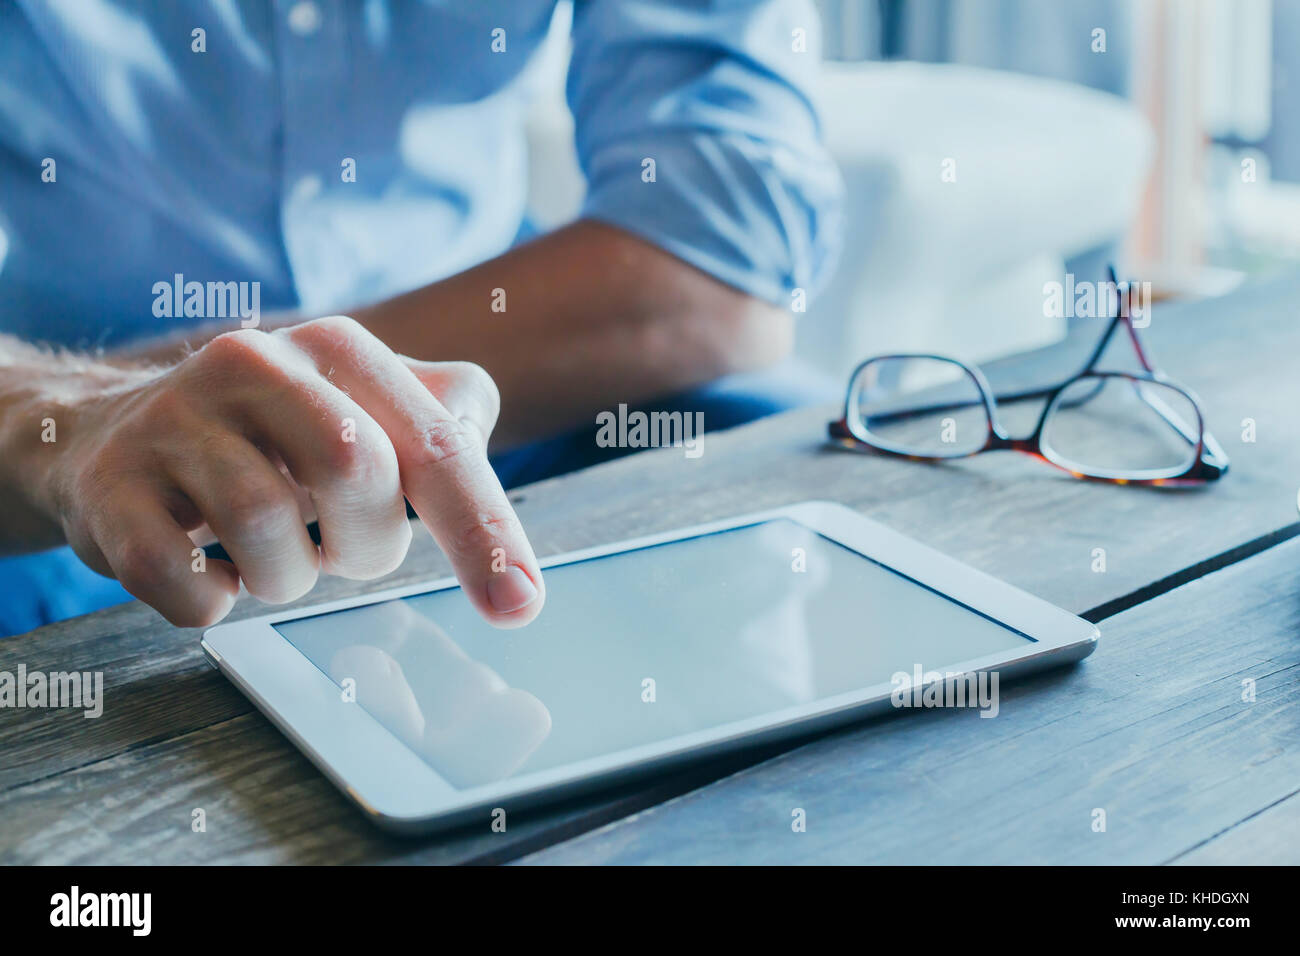 man reading emails and news on social media, close up of hands using digital tablet computer, banking online - Stock Image